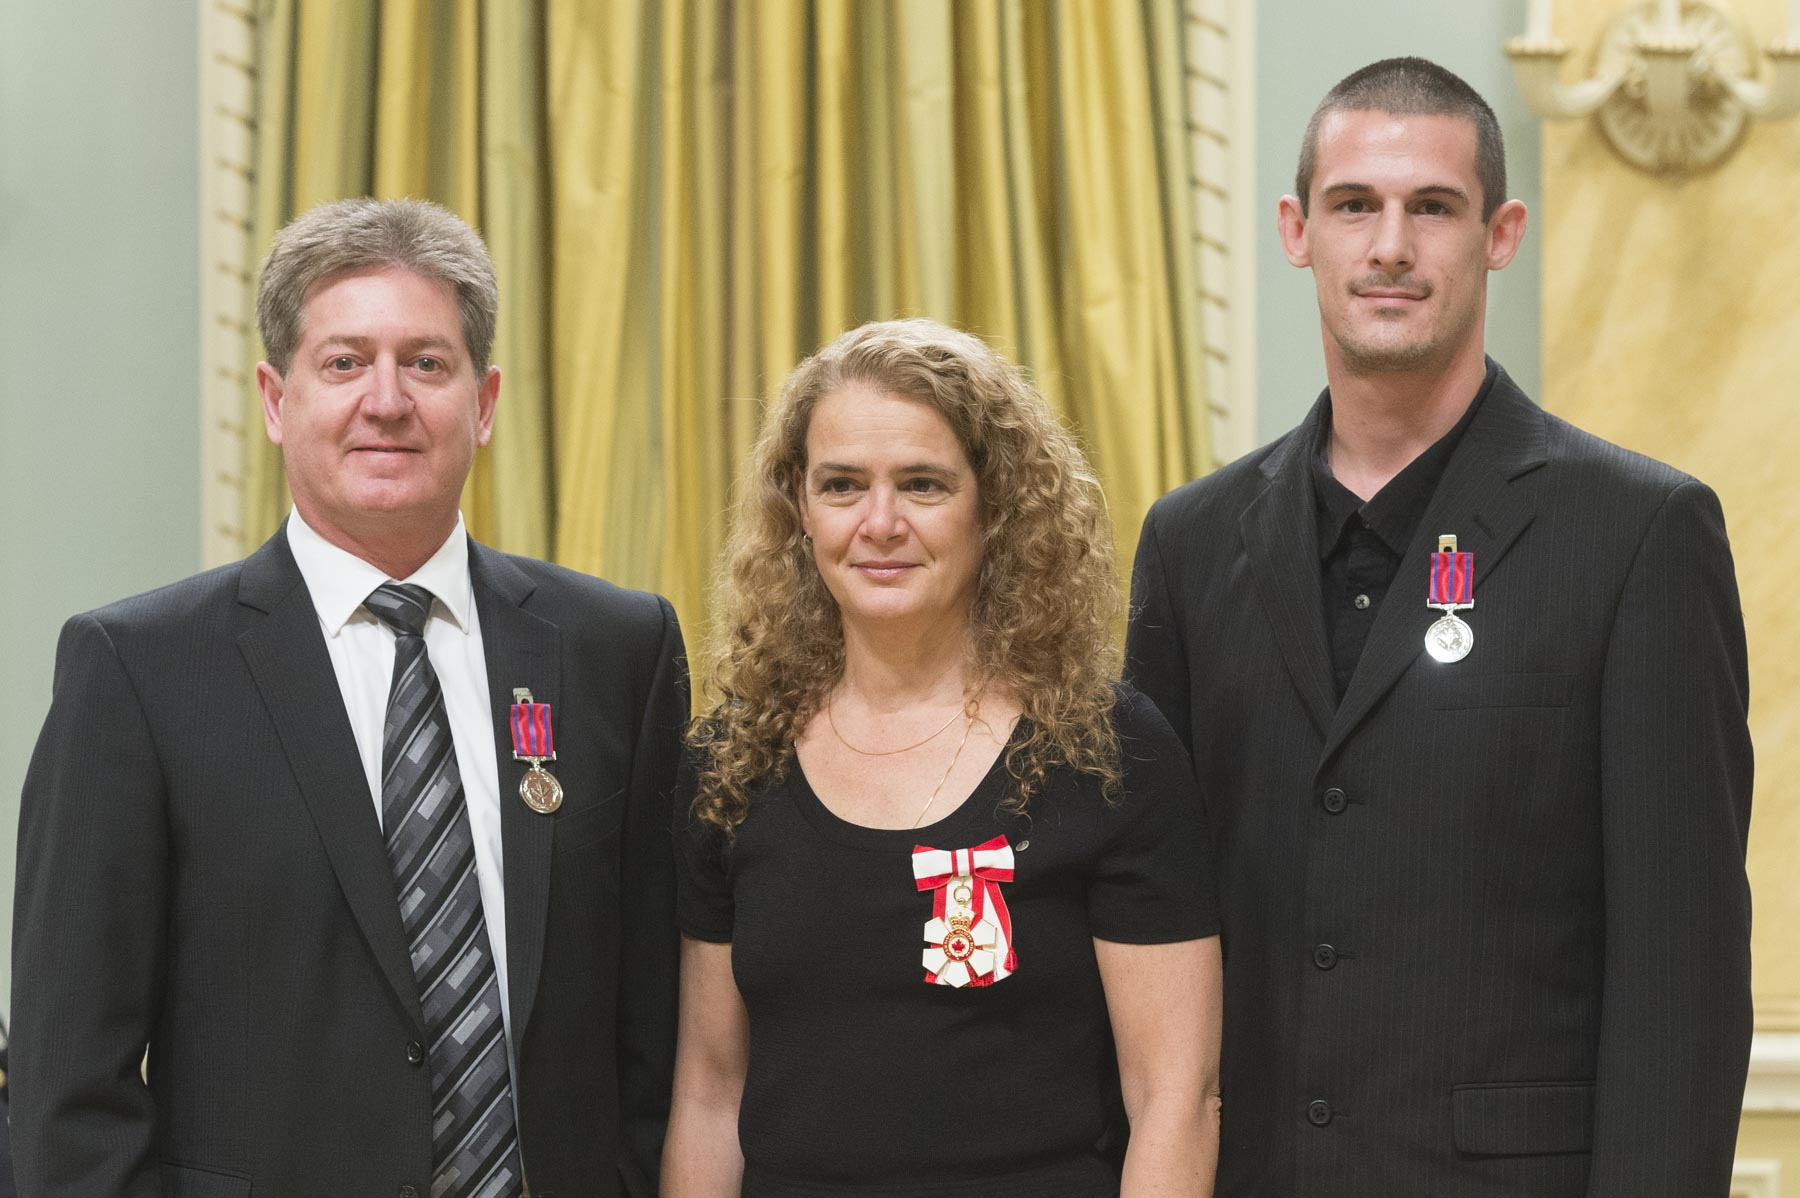 On May 18, 2015, John Gorman and Jim Mascioli intervened in an attack on a young woman, in Timmins, Ontario. The men discovered a car that had crashed into a ditch; inside, they found a woman being stabbed by the driver. Mr. Gorman pulled the victim out of the car, but the assailant followed them out onto the road. After threatening them with his knife, the assailant lunged at the victim, tackled her to the ground and resumed his attack. Mr. Mascioli hauled the man off the woman and restrained him while Mr. Gorman and a bystander cared for the victim until emergency services arrived.